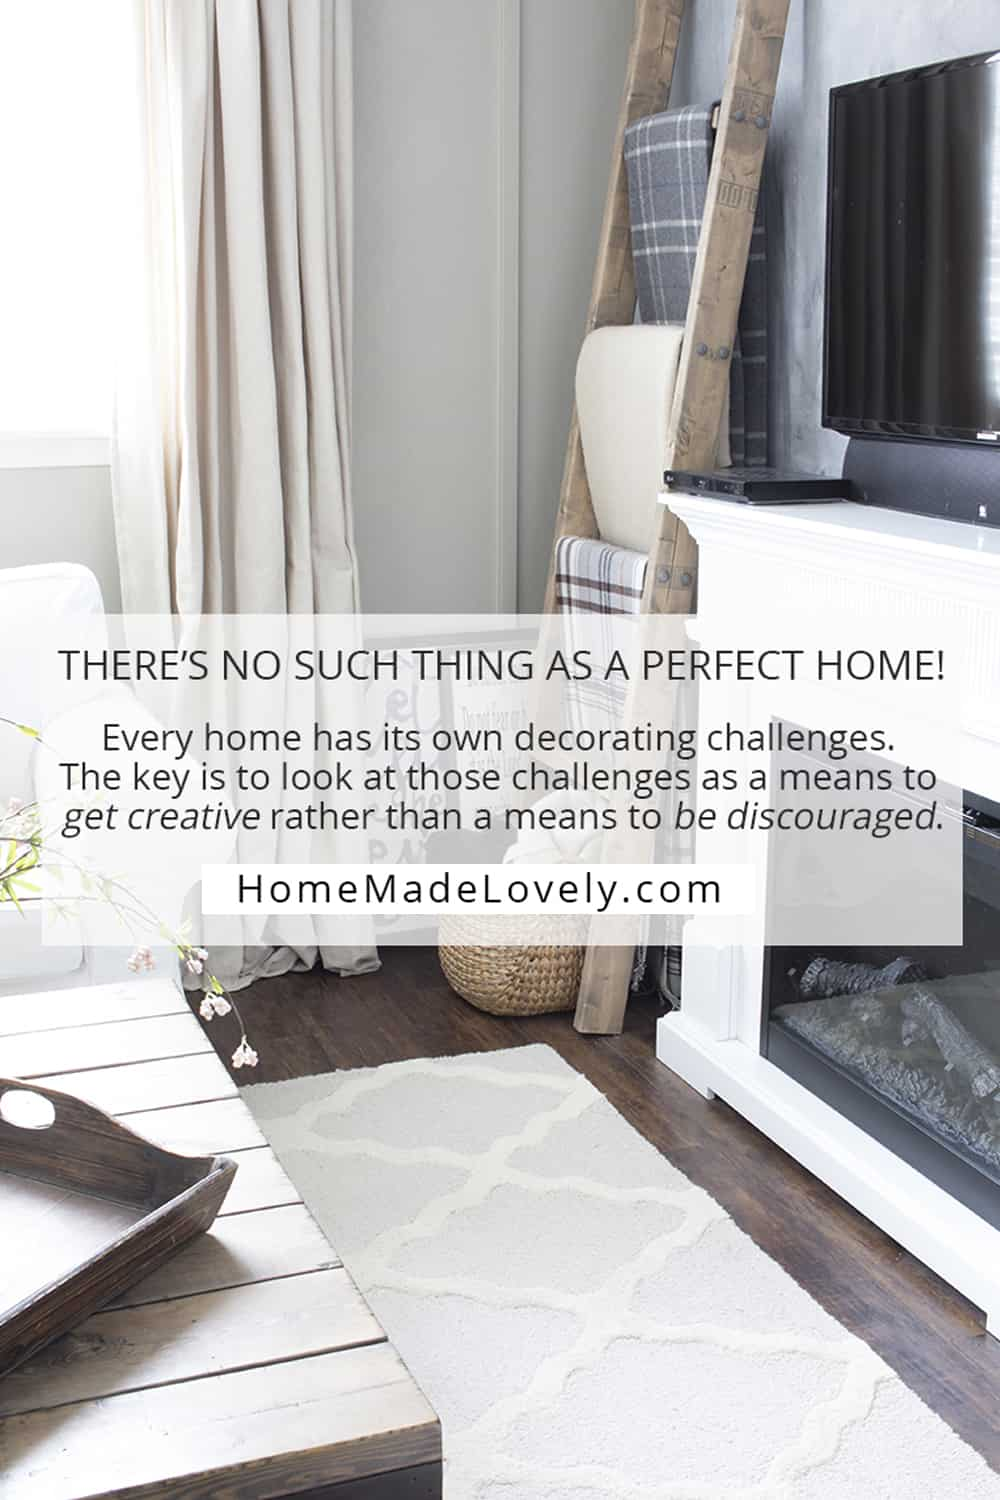 No such thing as a perfect home